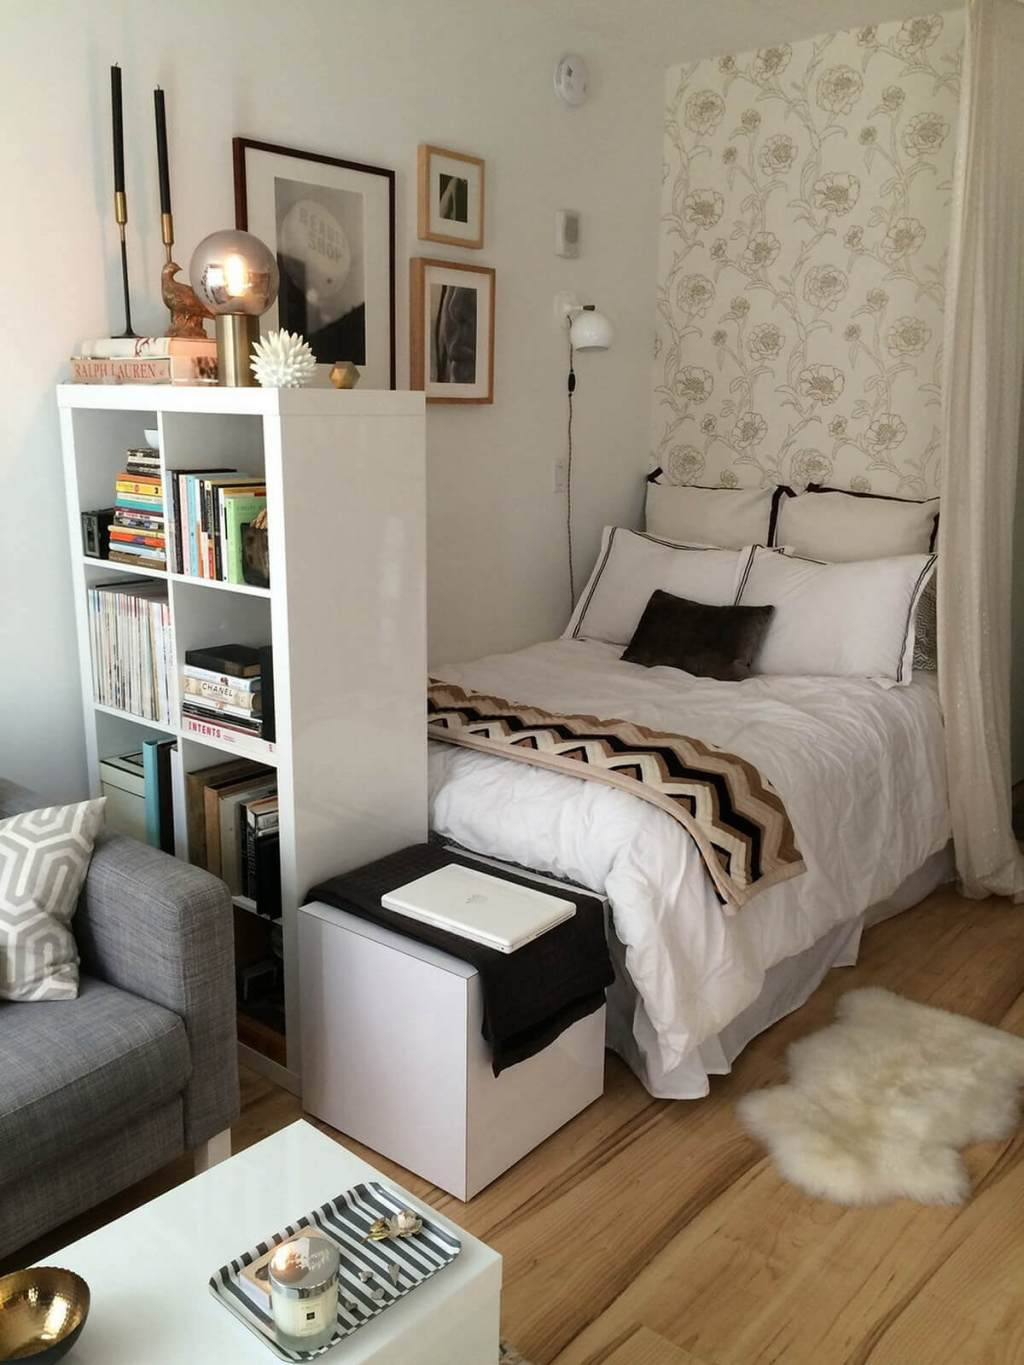 28 Small Bedroom Organization Ideas That Are Smart and